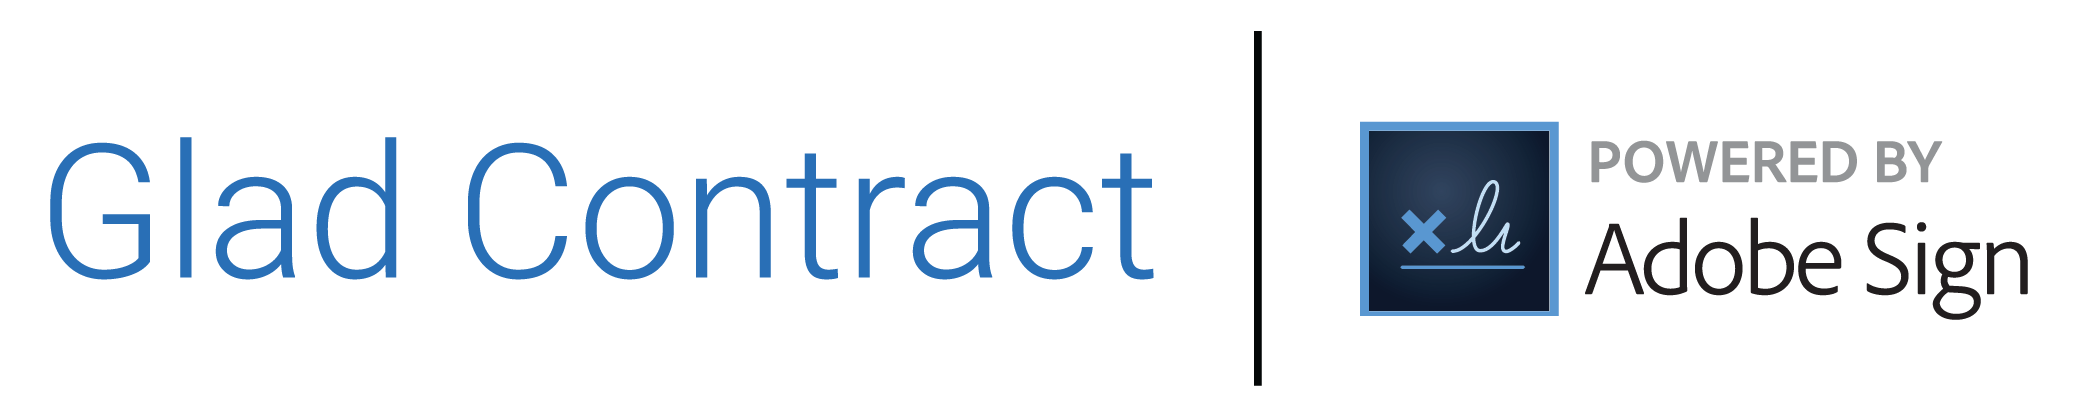 gladCONTRACT | POWERED BY - Adobe Document Cloud